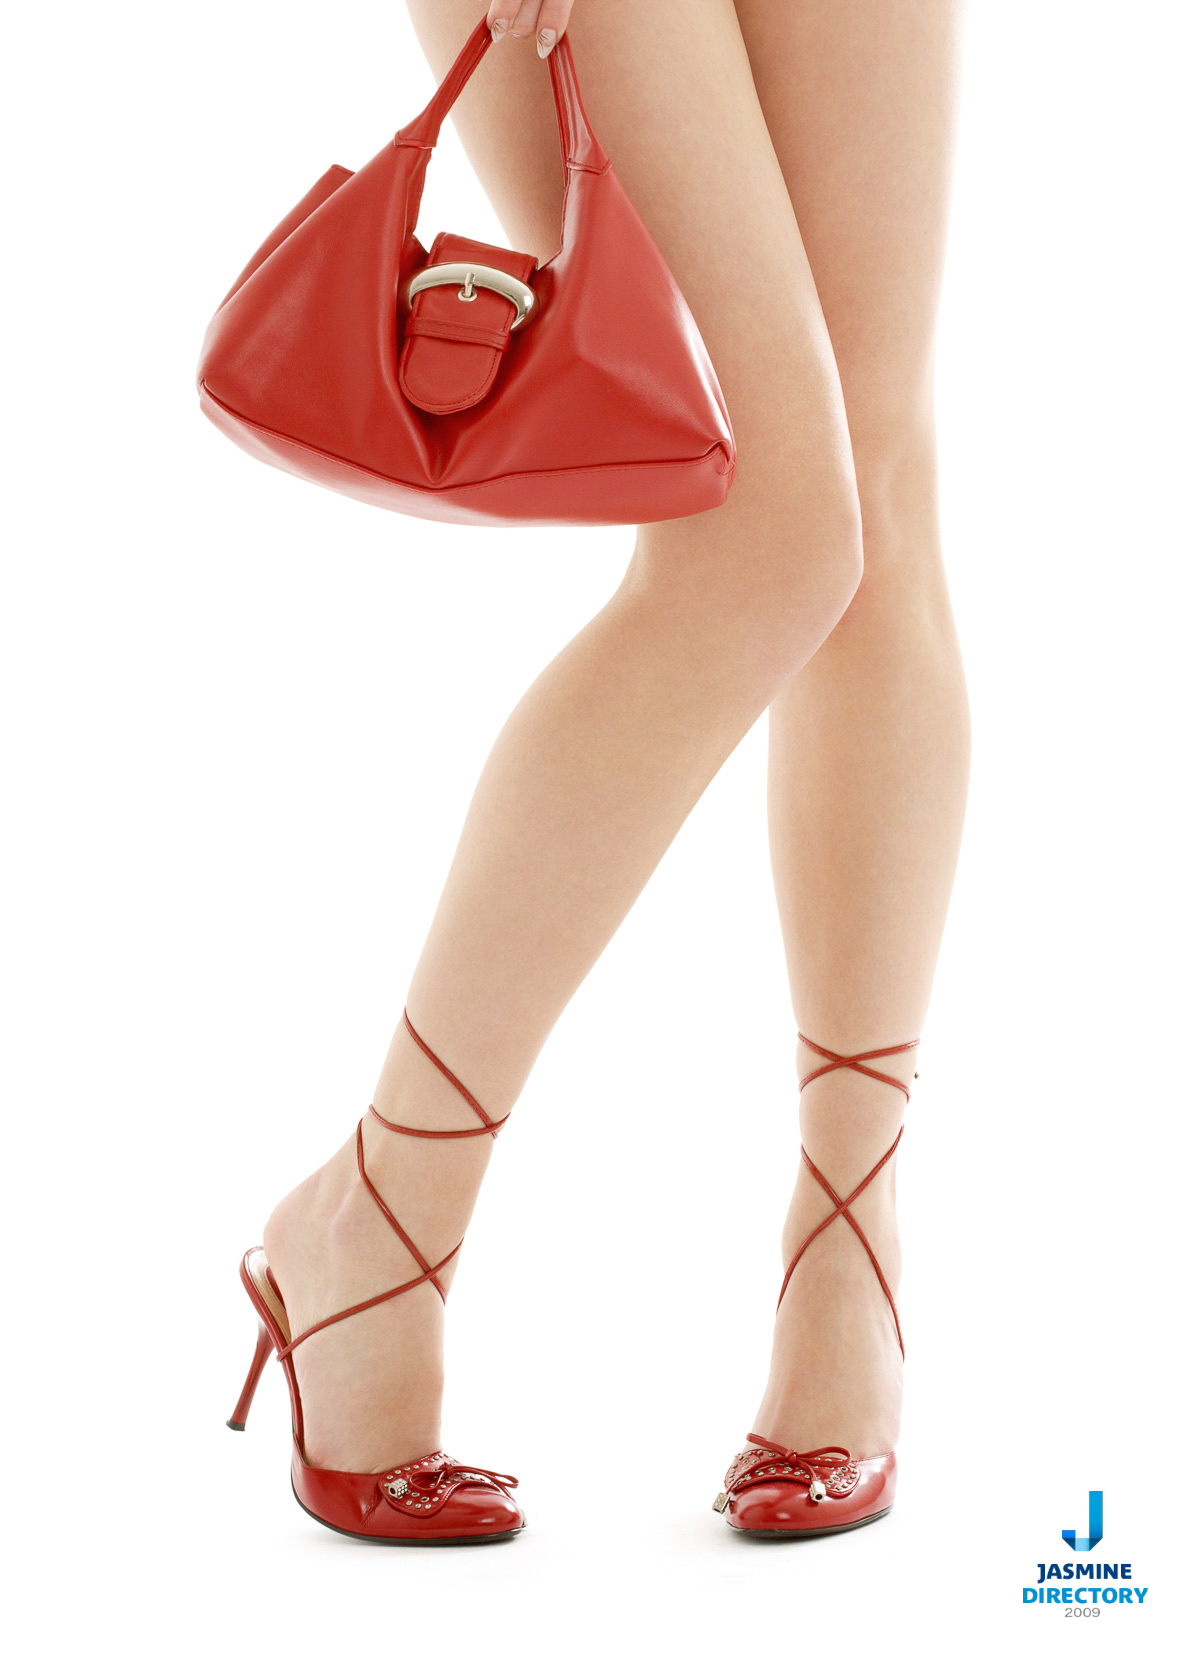 Handbag - High-heeled shoe